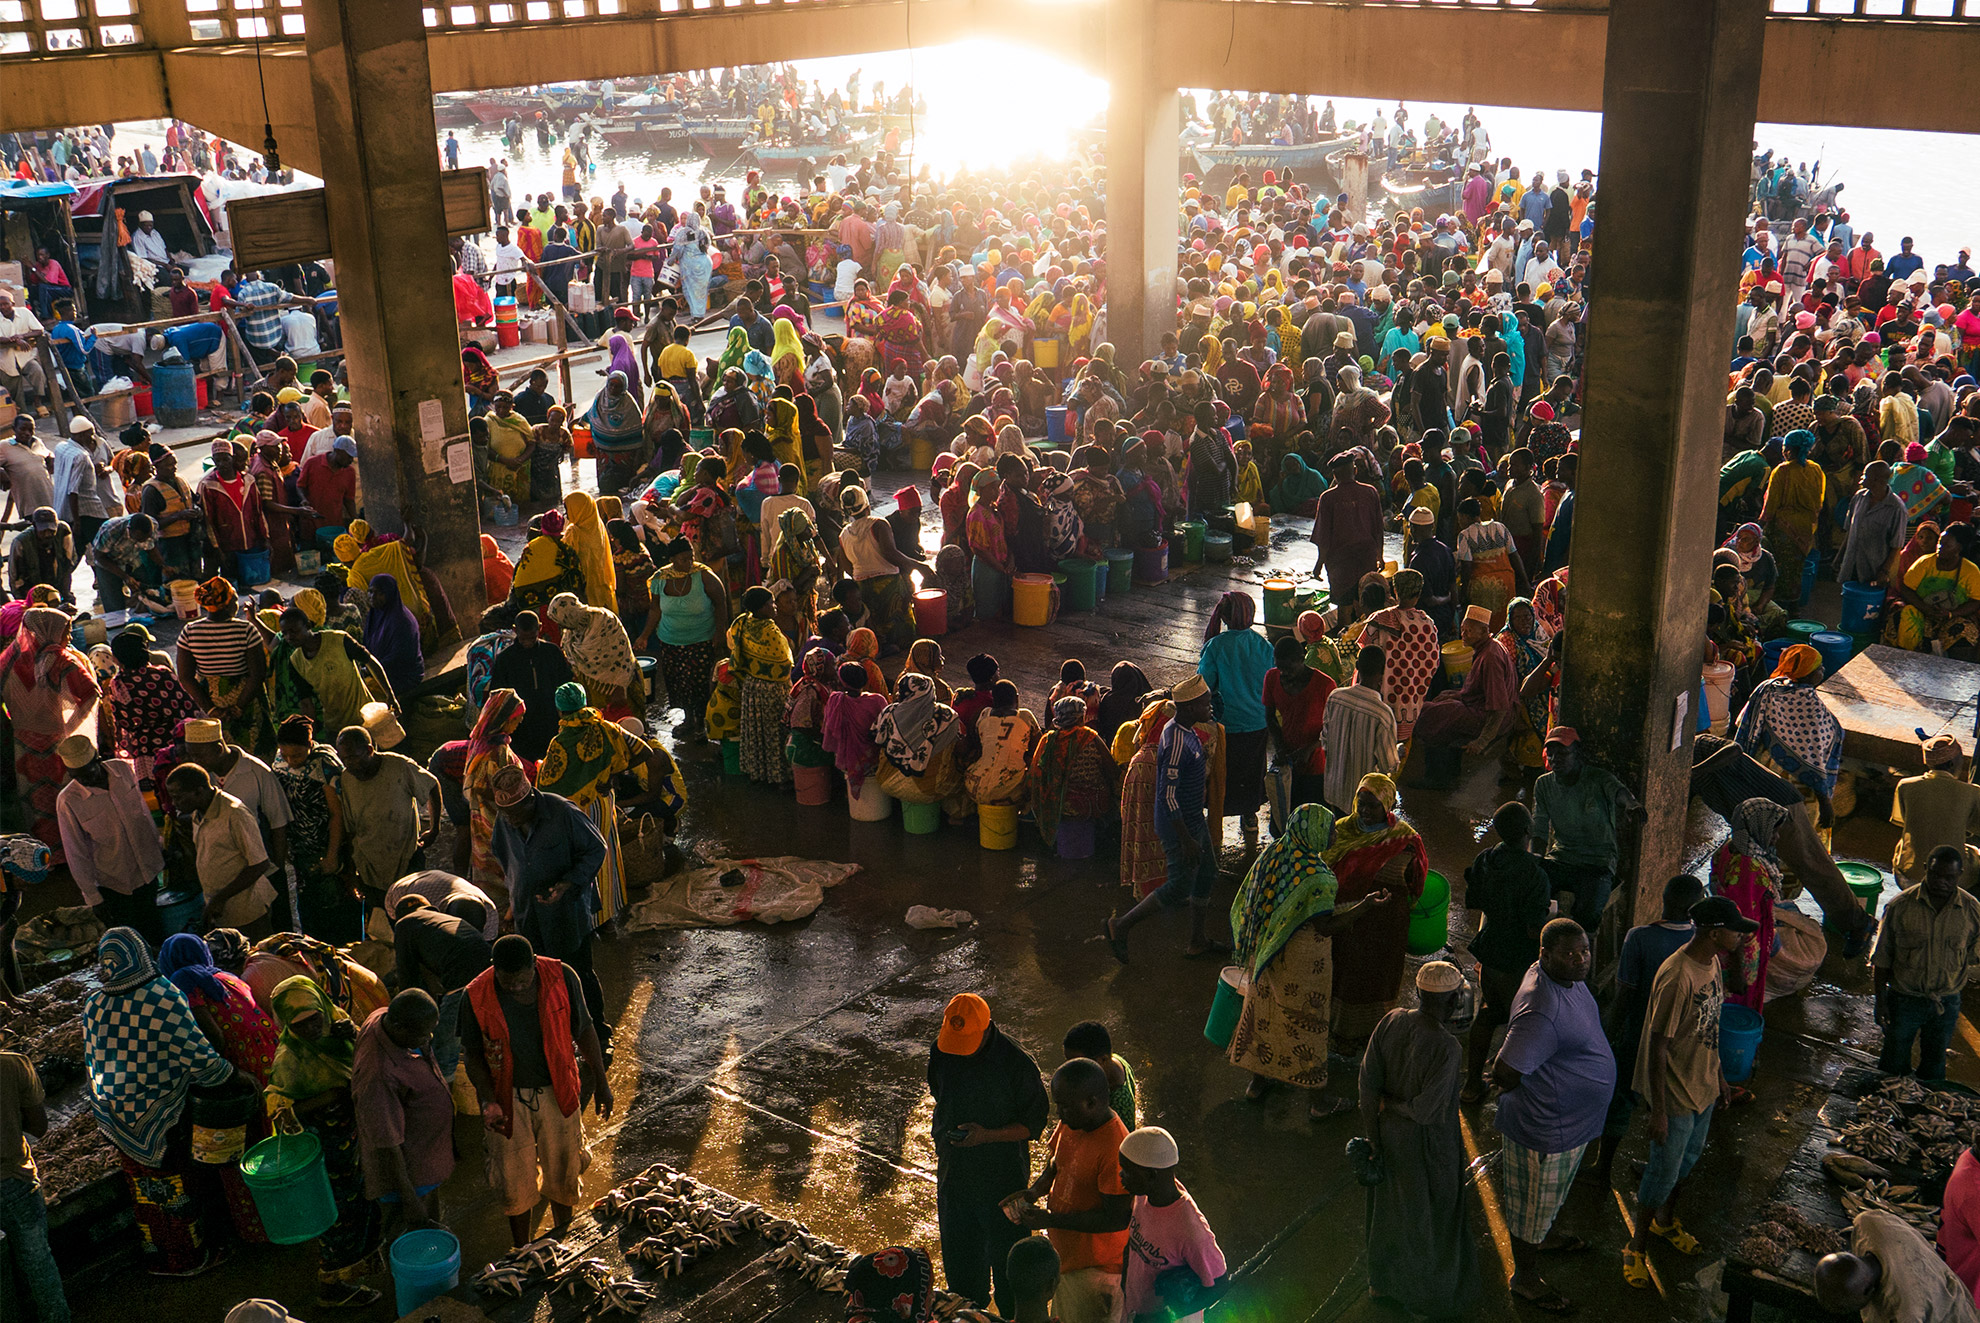 A large crowd at the market